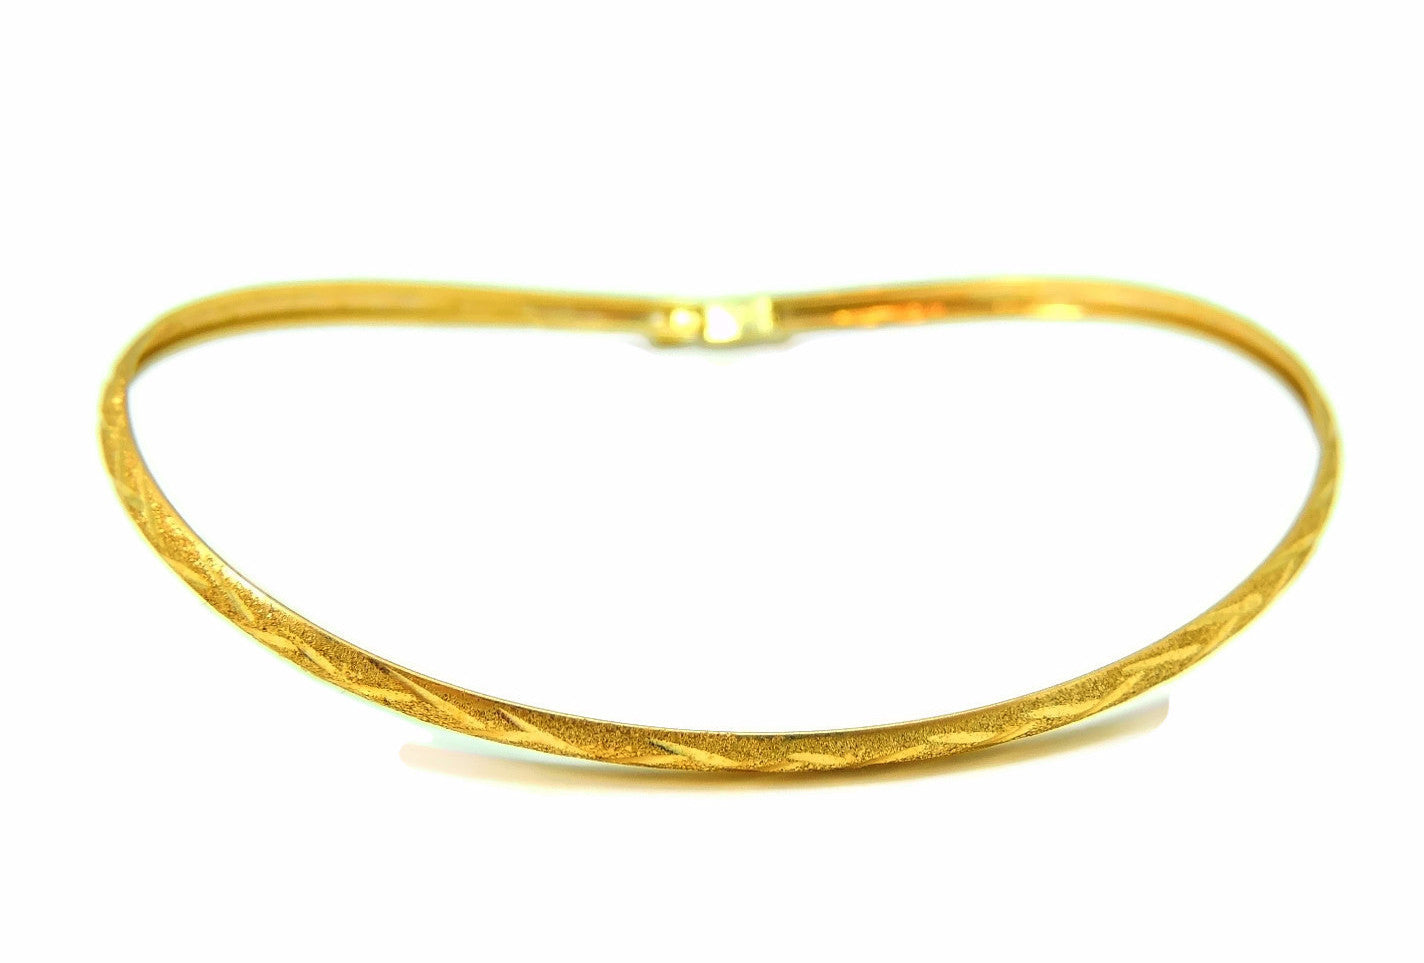 rose bangles princess diamond roberto bangle hinged coin gold bracelet